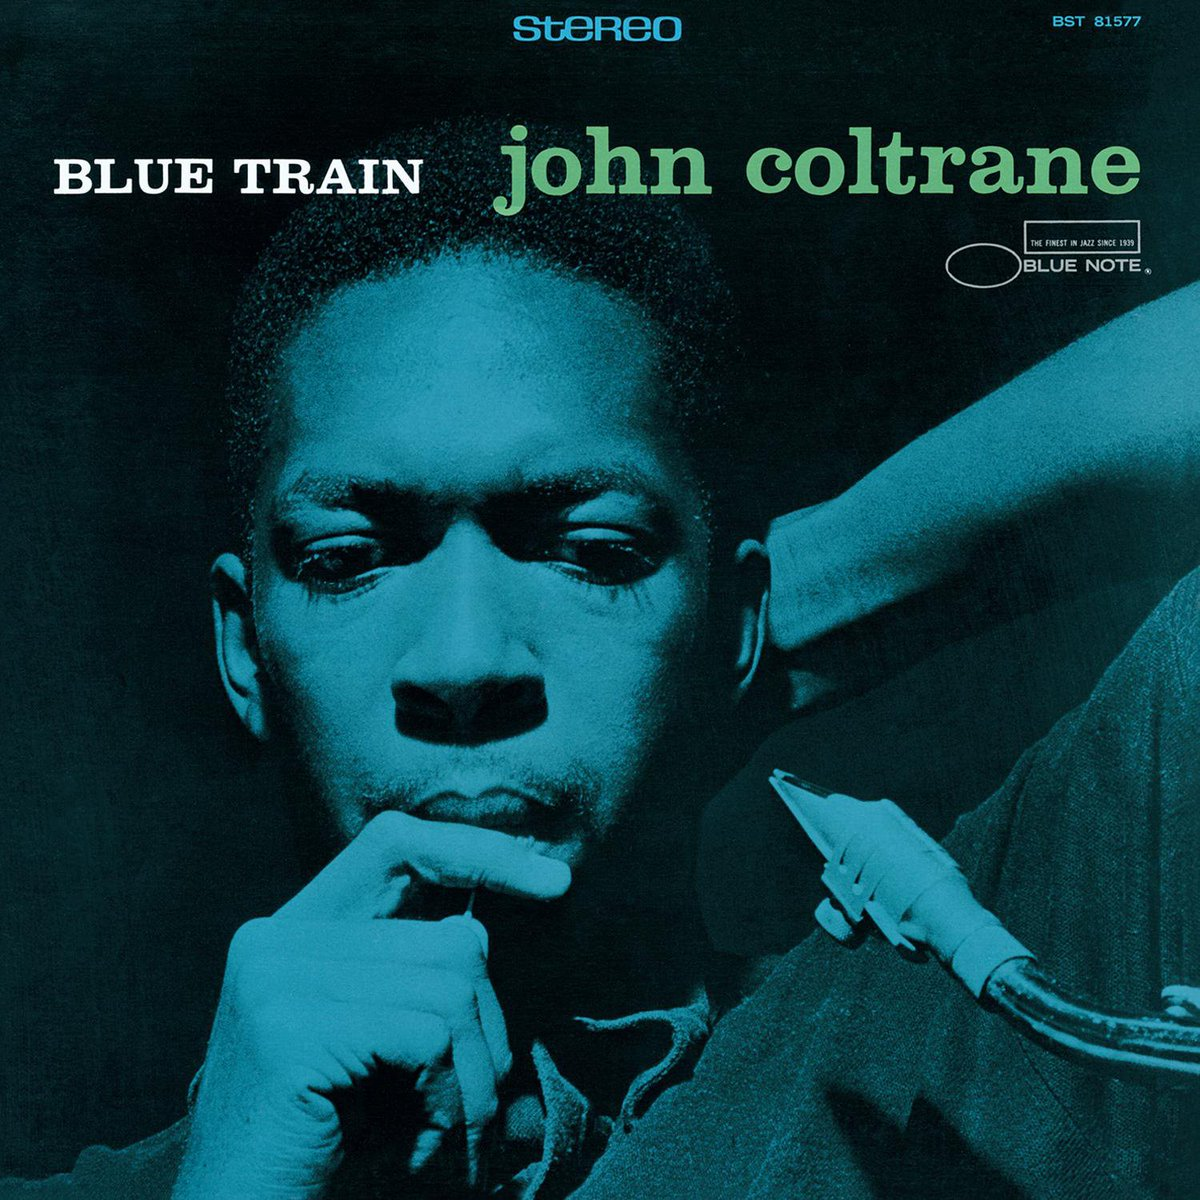 60 years ago #OTD the great #JohnColtrane recorded #BlueTrain, one of the immortal classics of the Blue Note catalog  https://t.co/Md8Jv7AKbr